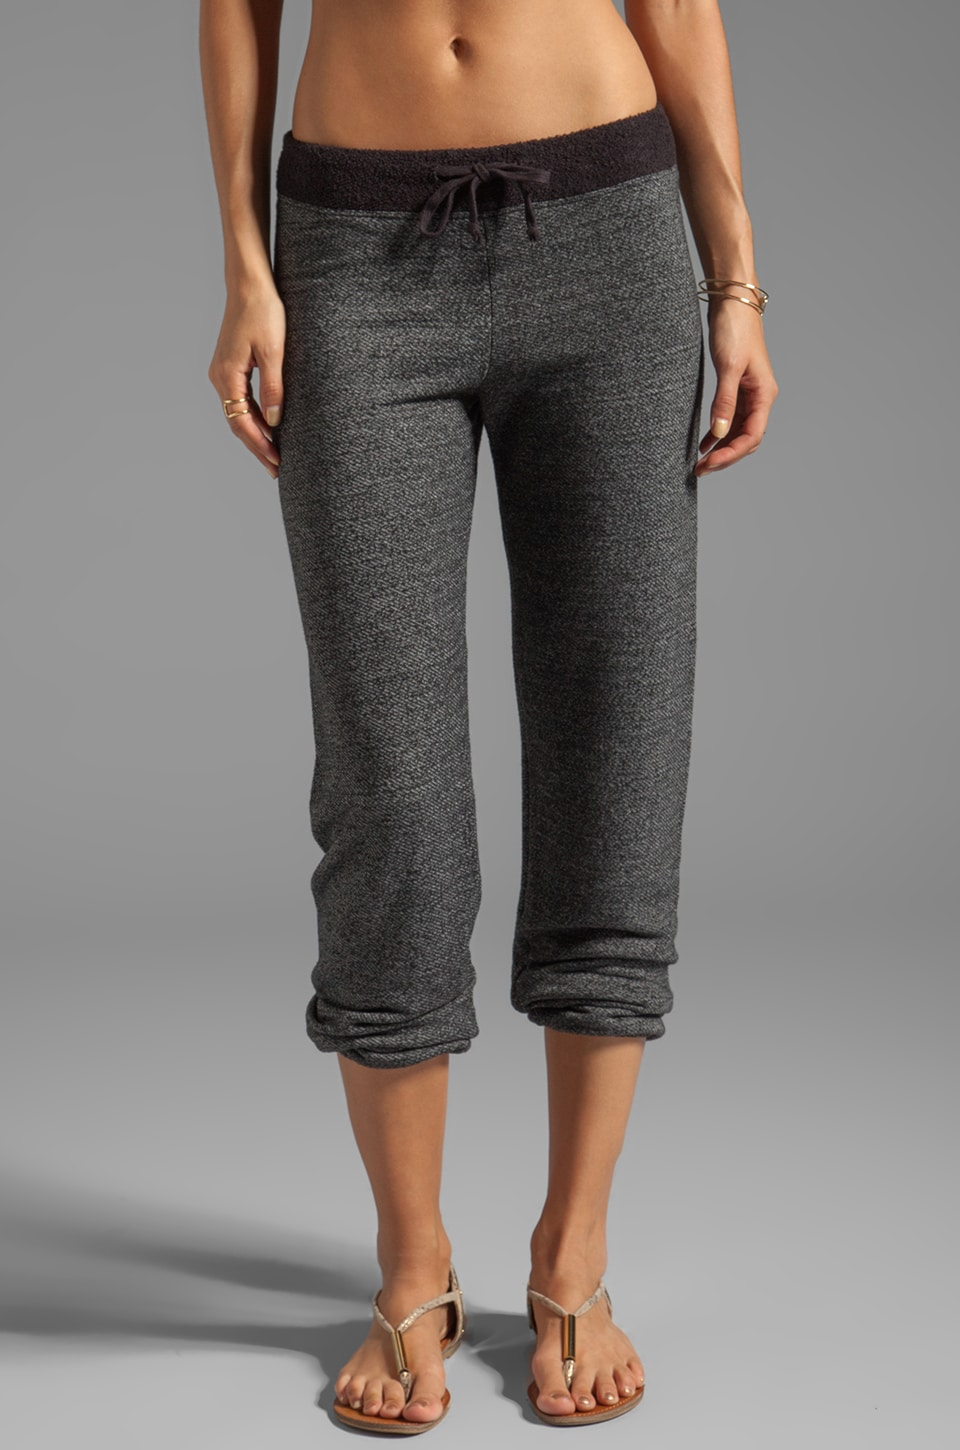 SUNDRY Basic Sweatpants in Heather Black